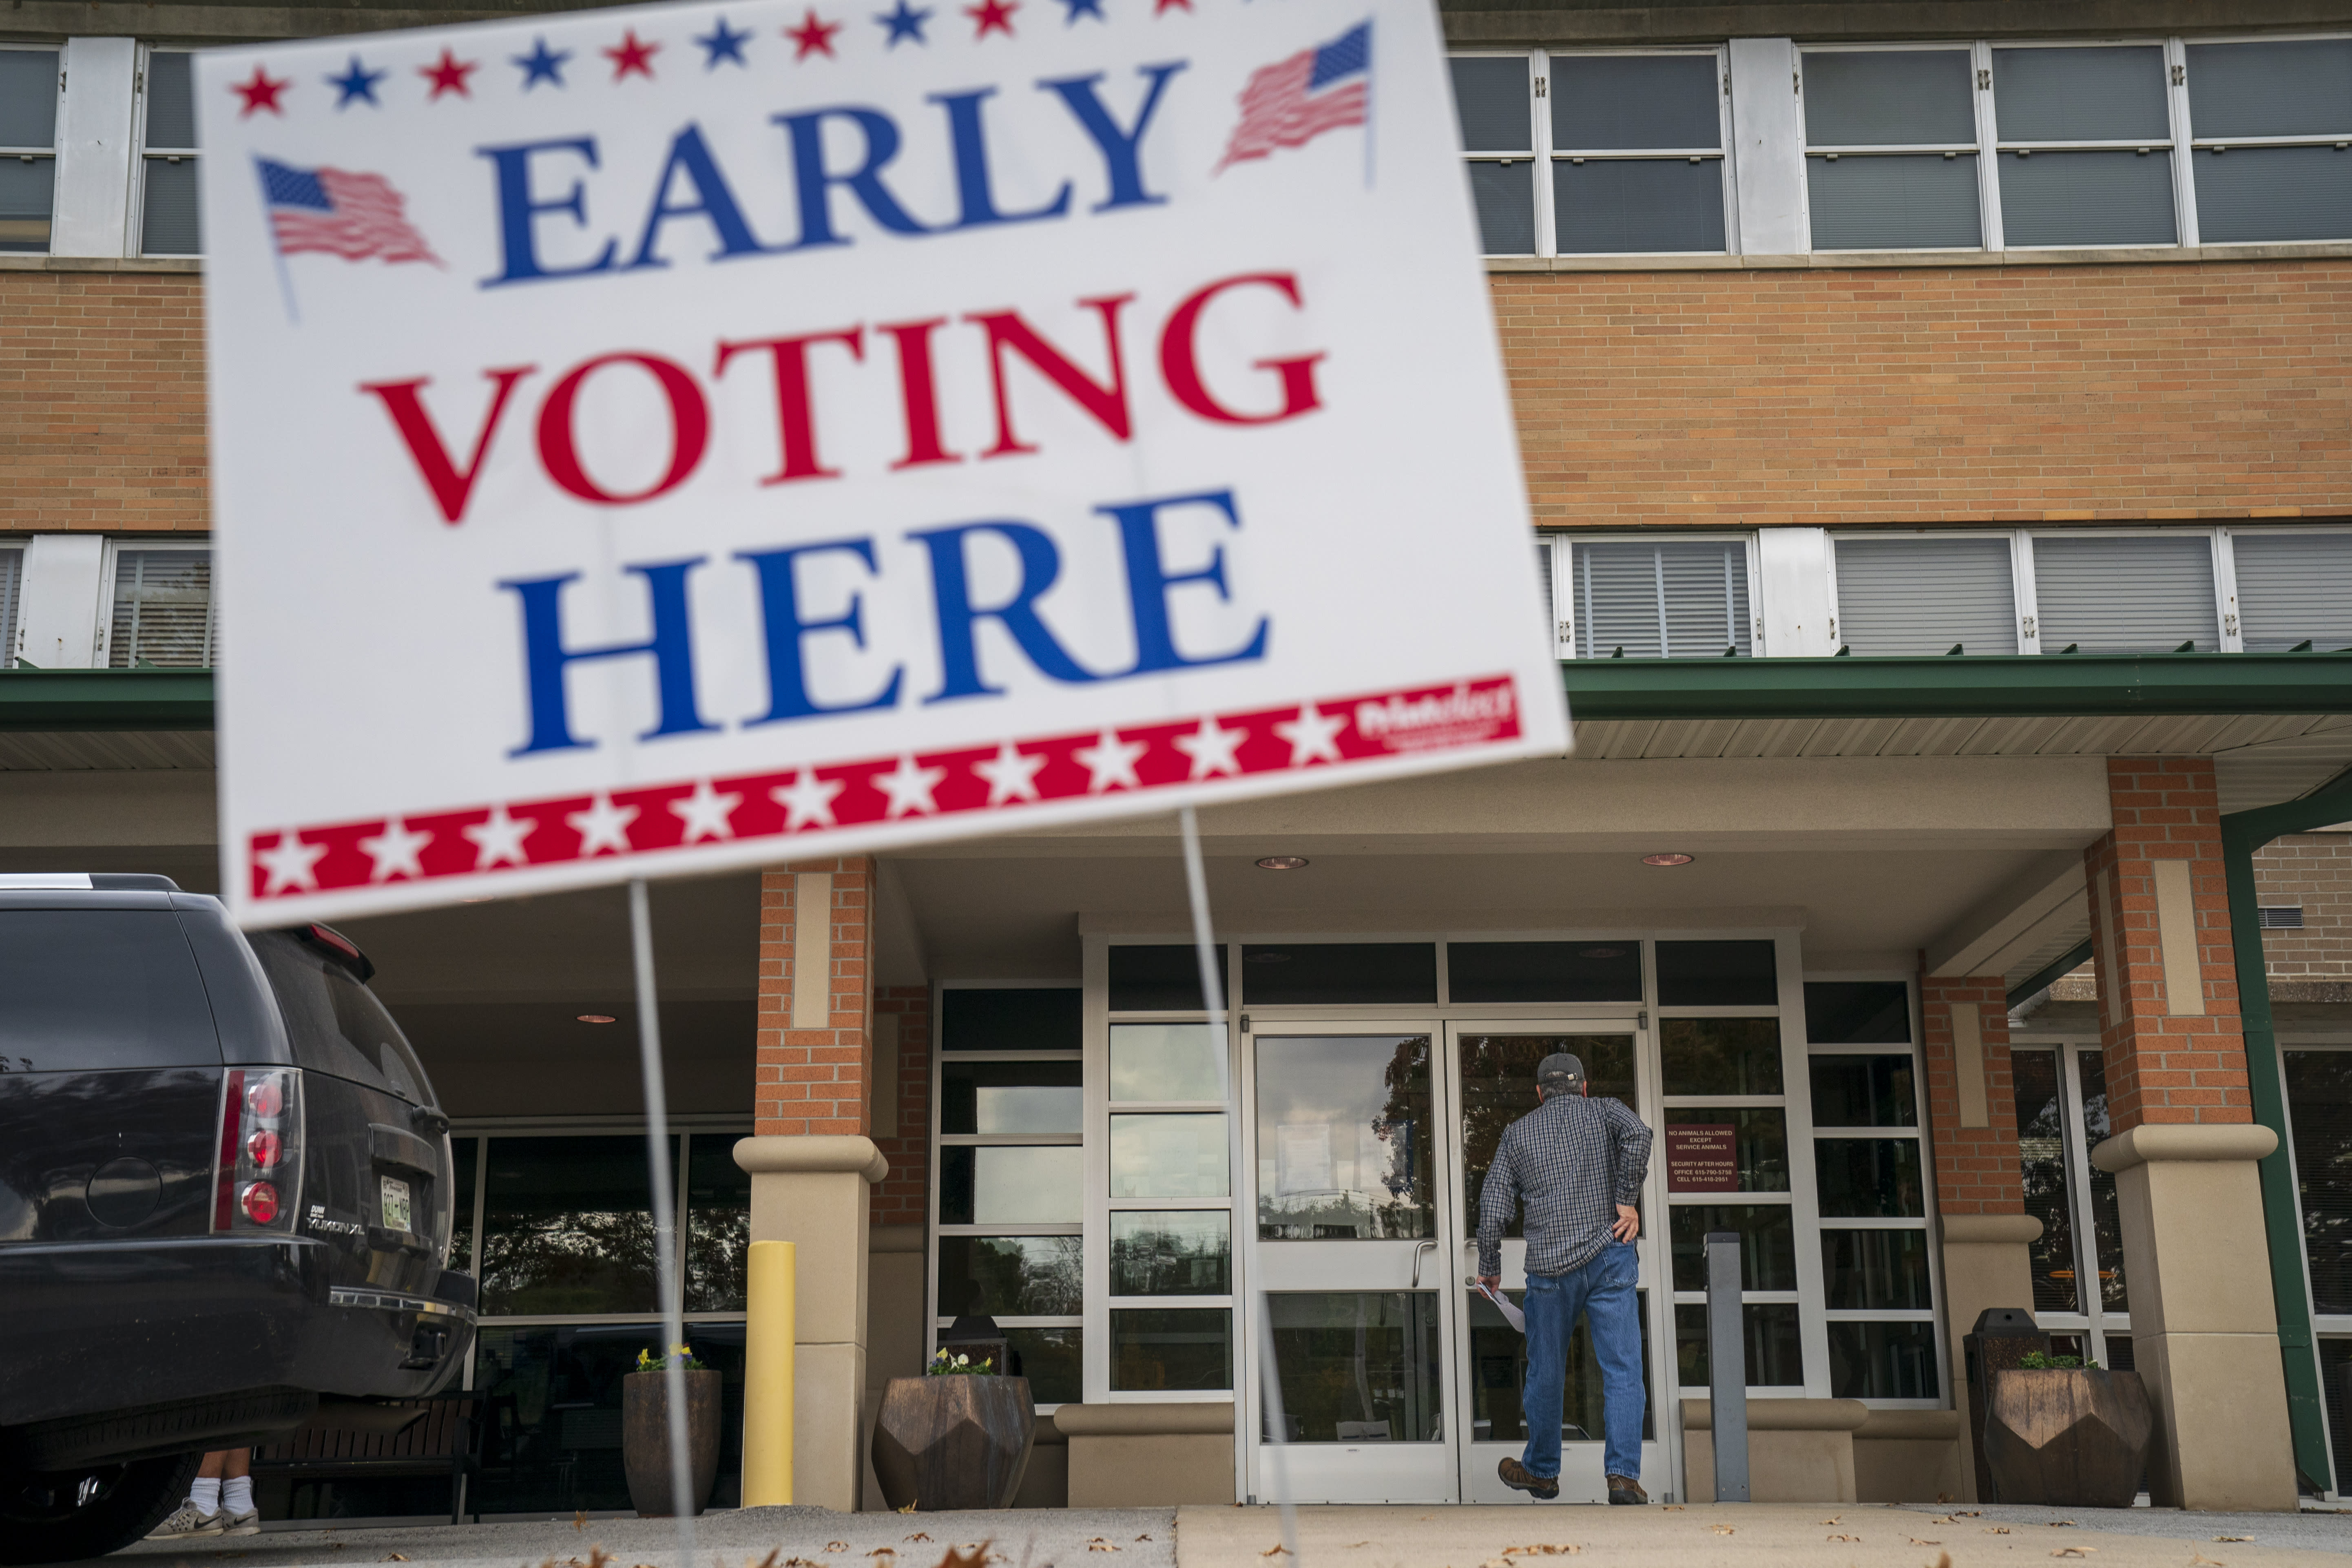 <p>A man arrives at an early voting polling place at the Williamson County Clerk's office, Oct. 31, 2018 in Franklin, Tenn. (Photo: Drew Angerer/Getty Images) </p>